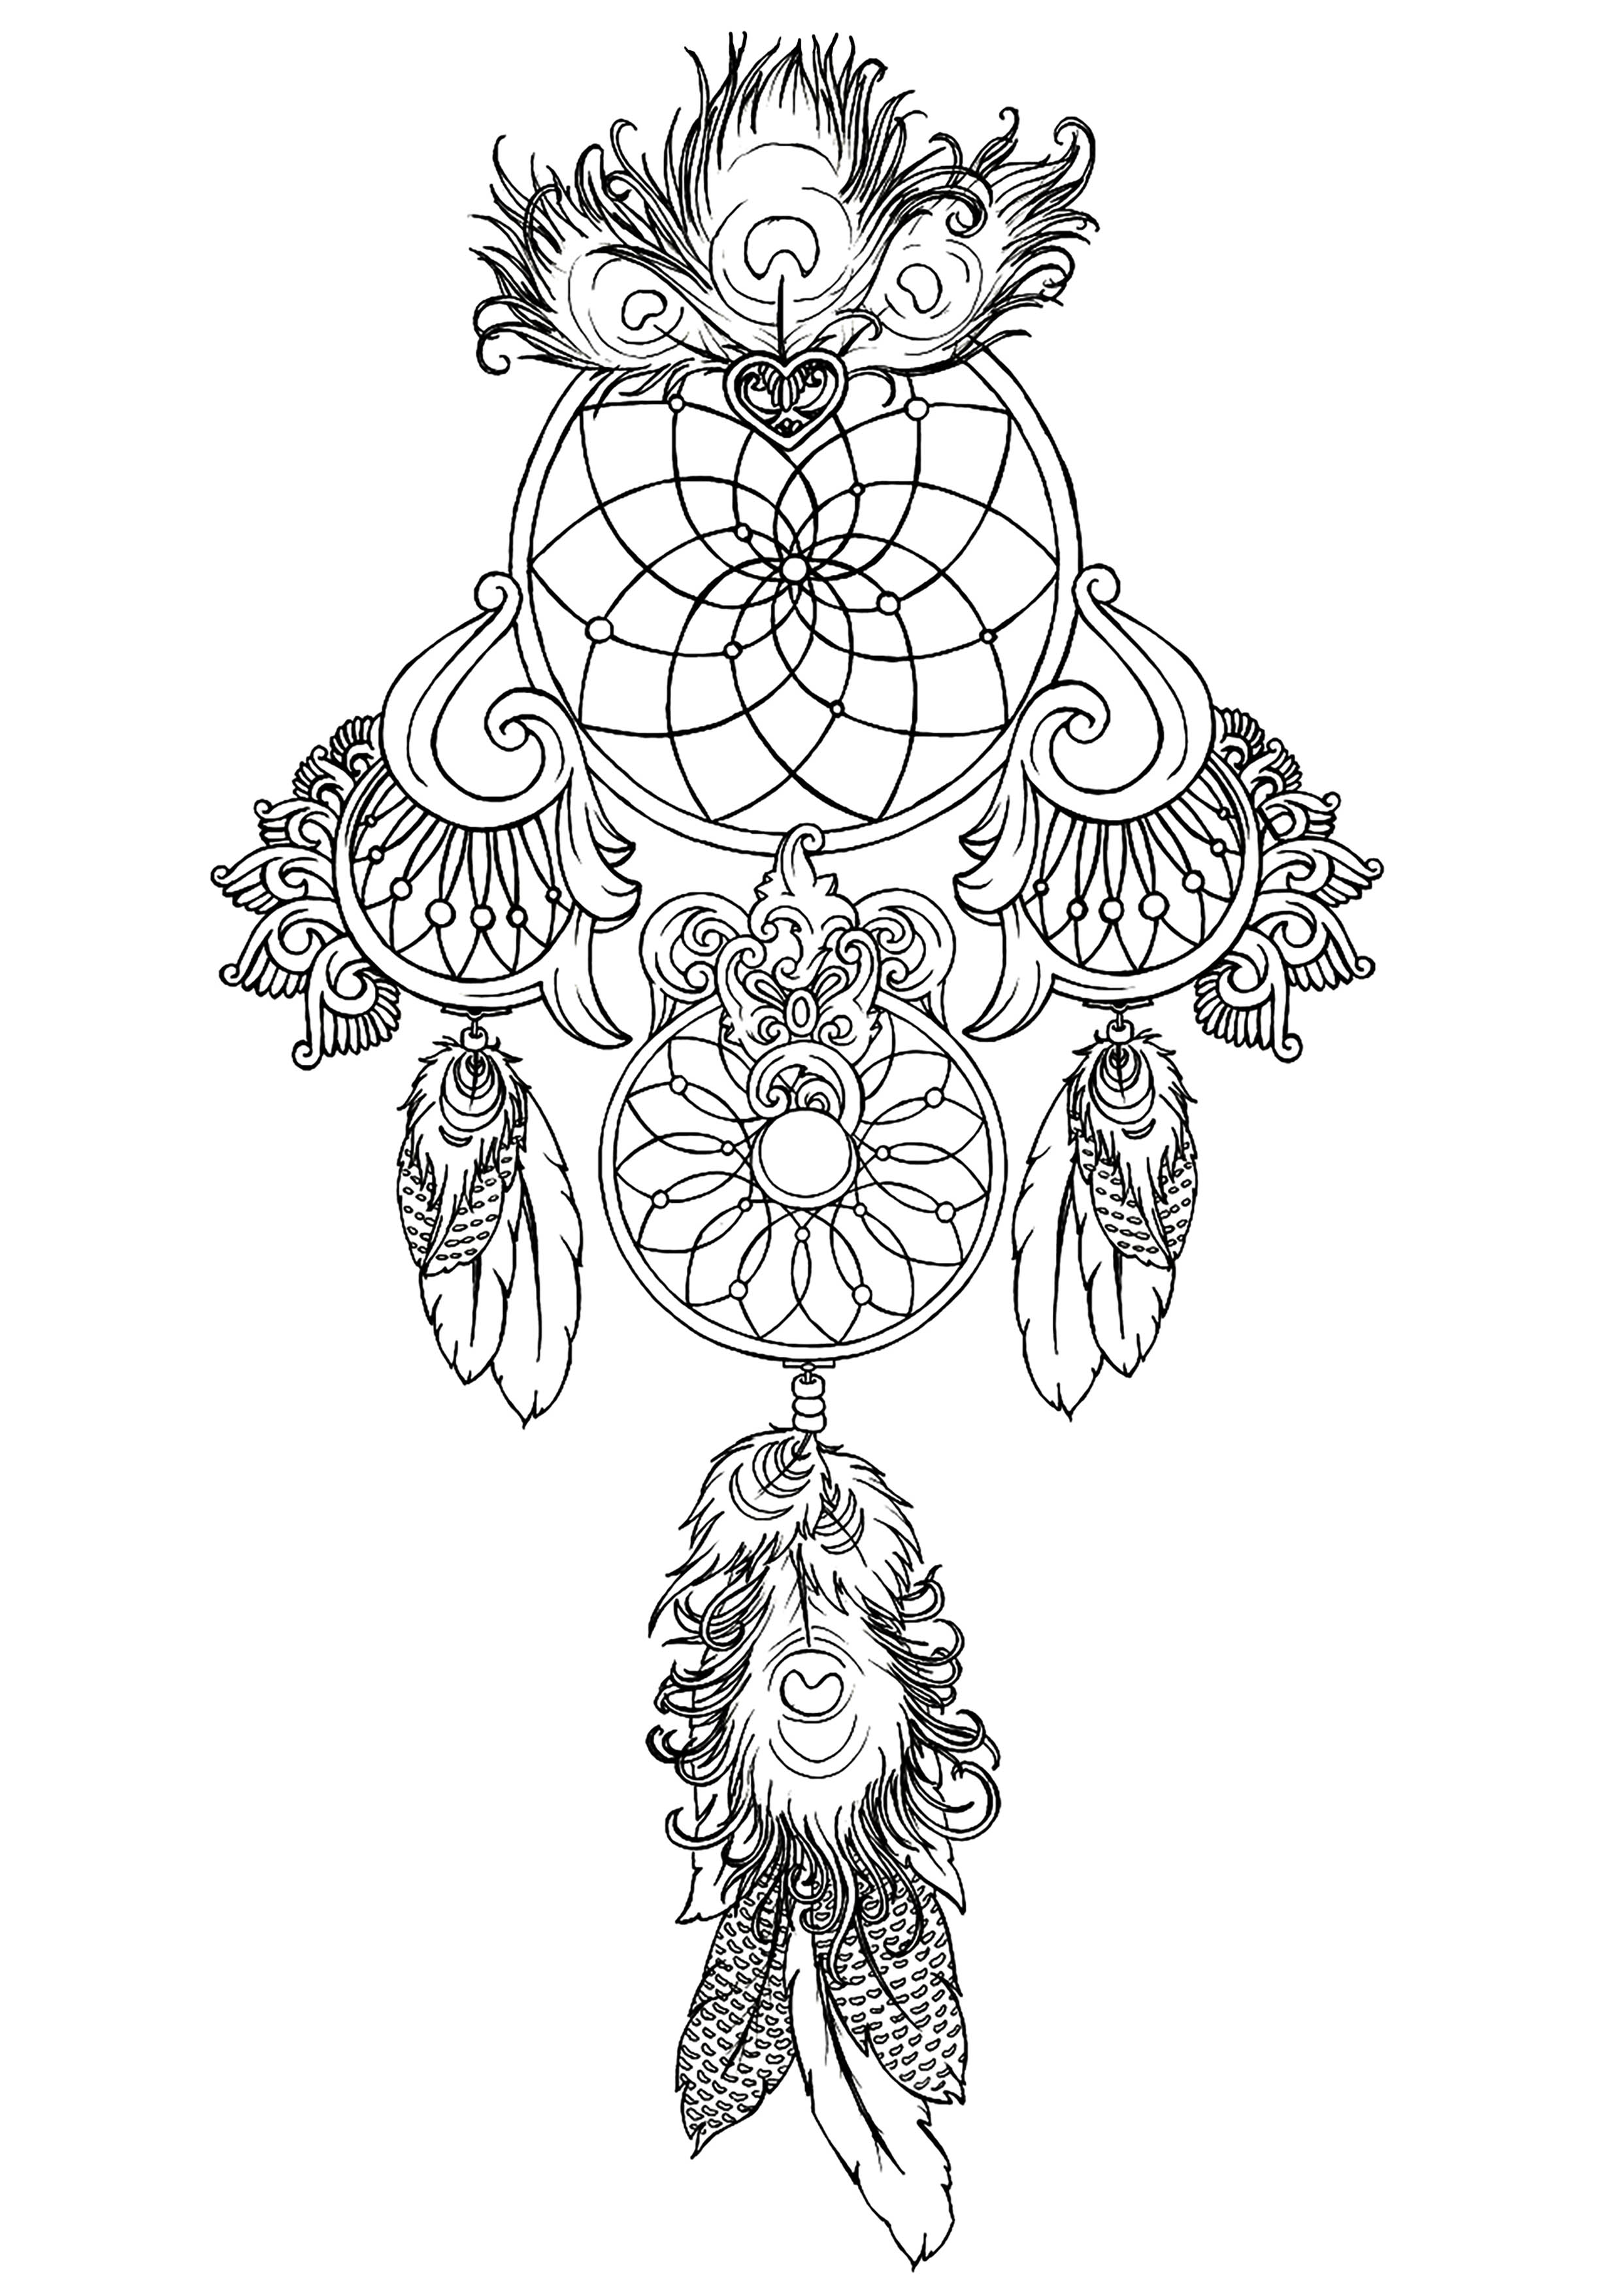 coloring pages for adults dream catchers free dream catcher coloring pages for adults printable to coloring dream adults catchers pages for